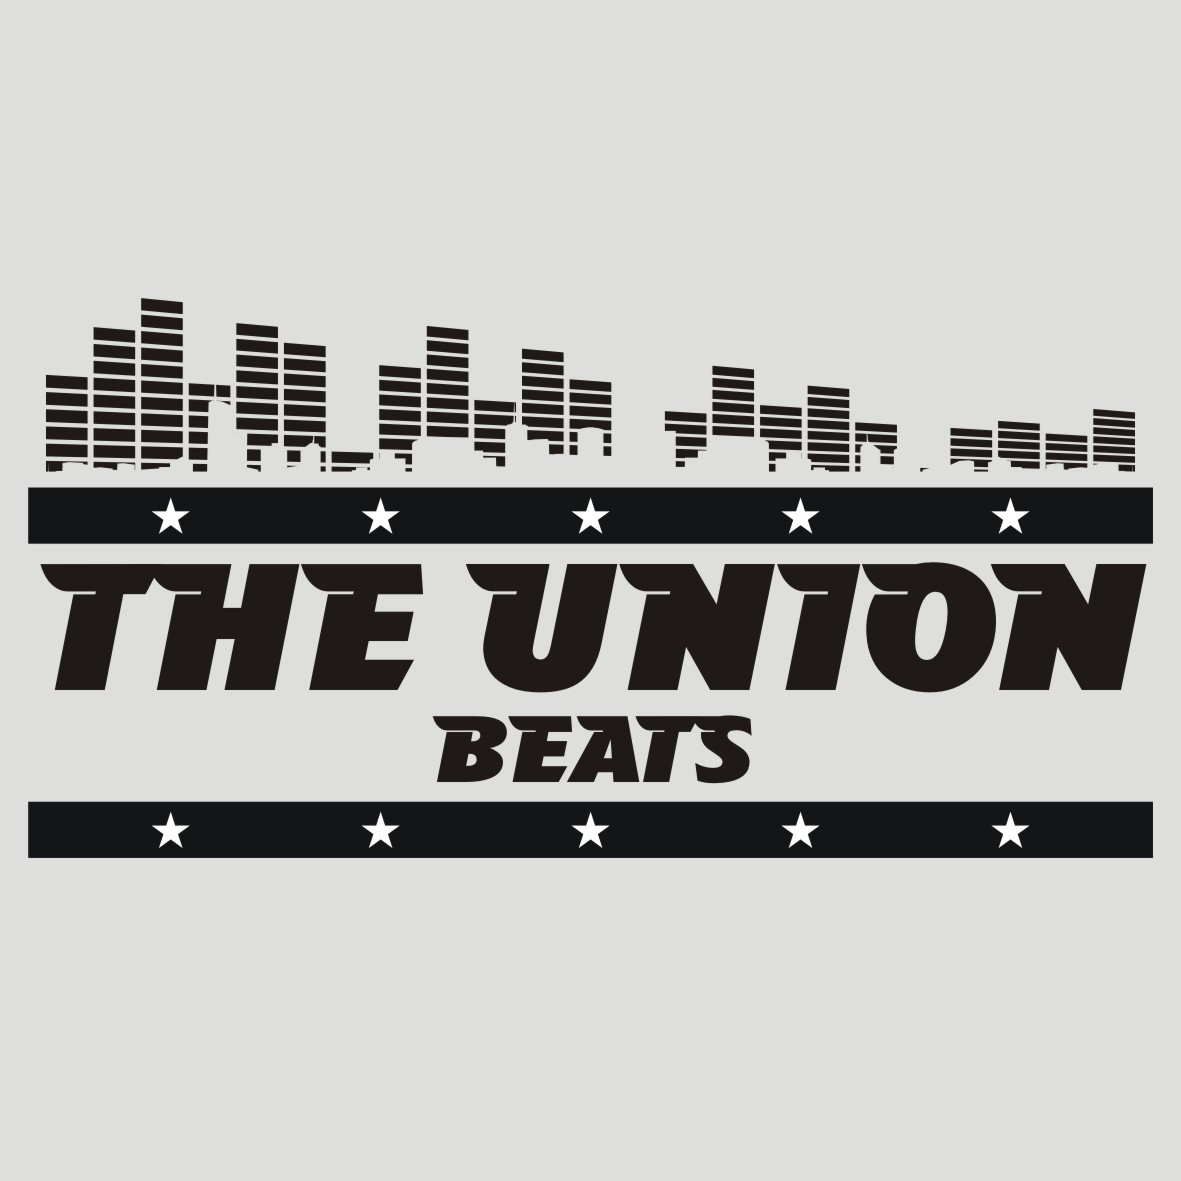 Logo Design by arteo_design - Entry No. 120 in the Logo Design Contest Unique Logo Design Wanted for THE UNION BEATS.